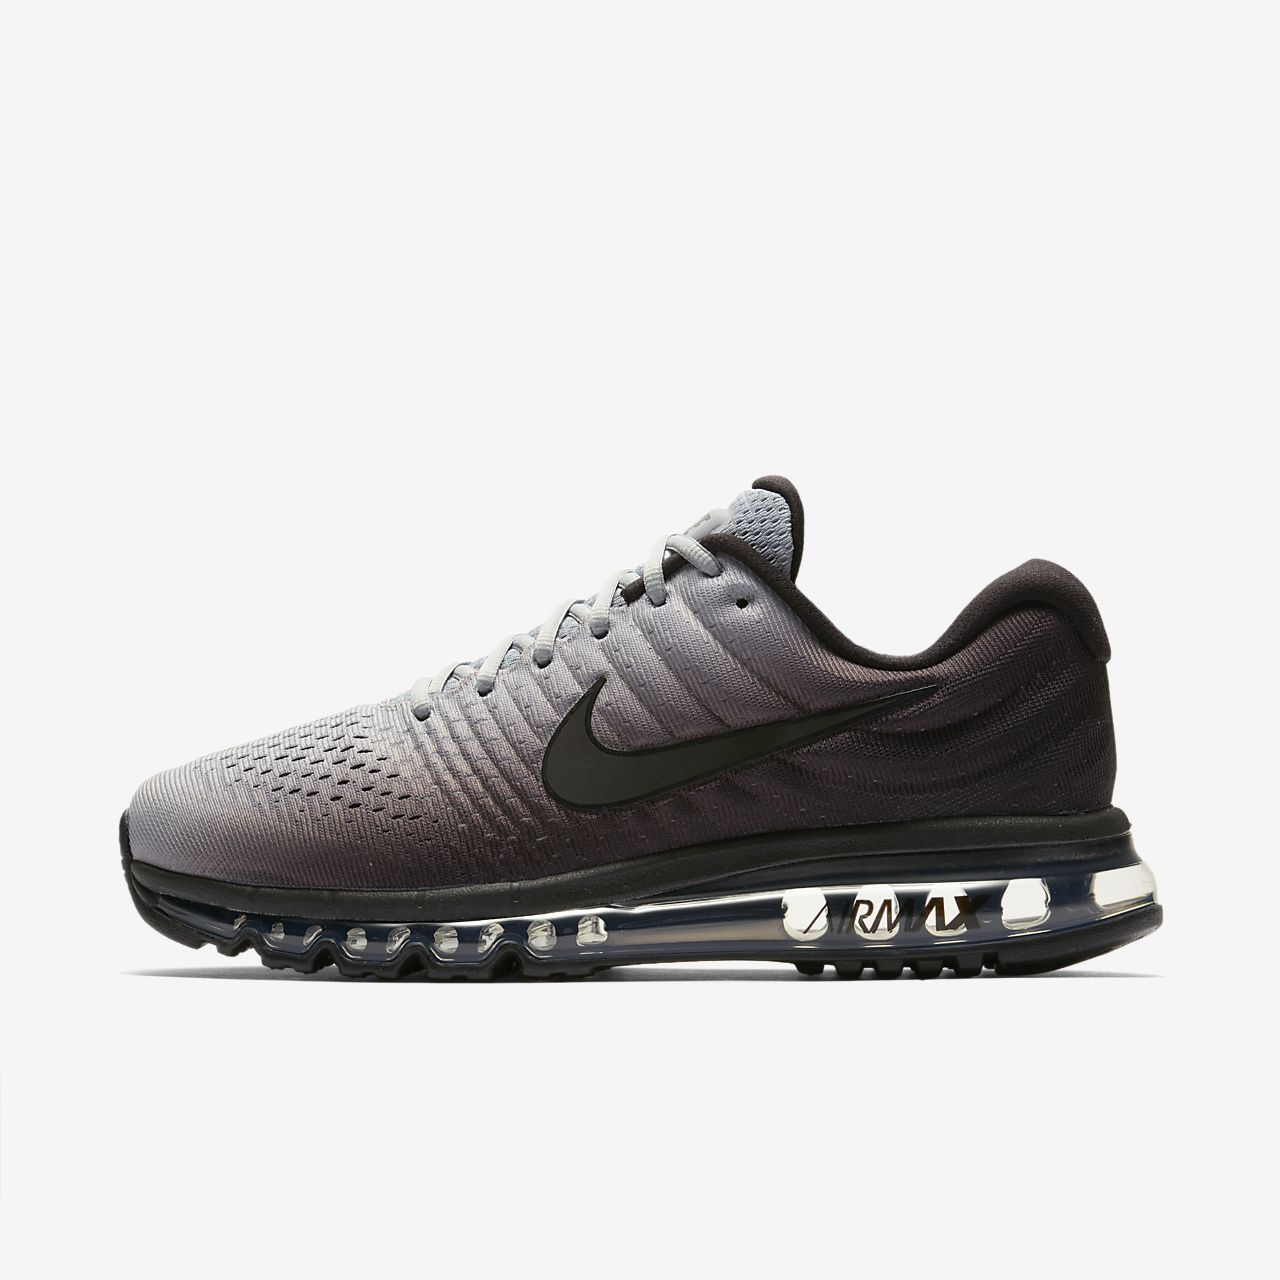 Nike Air Max 2017 Men's Running Shoe